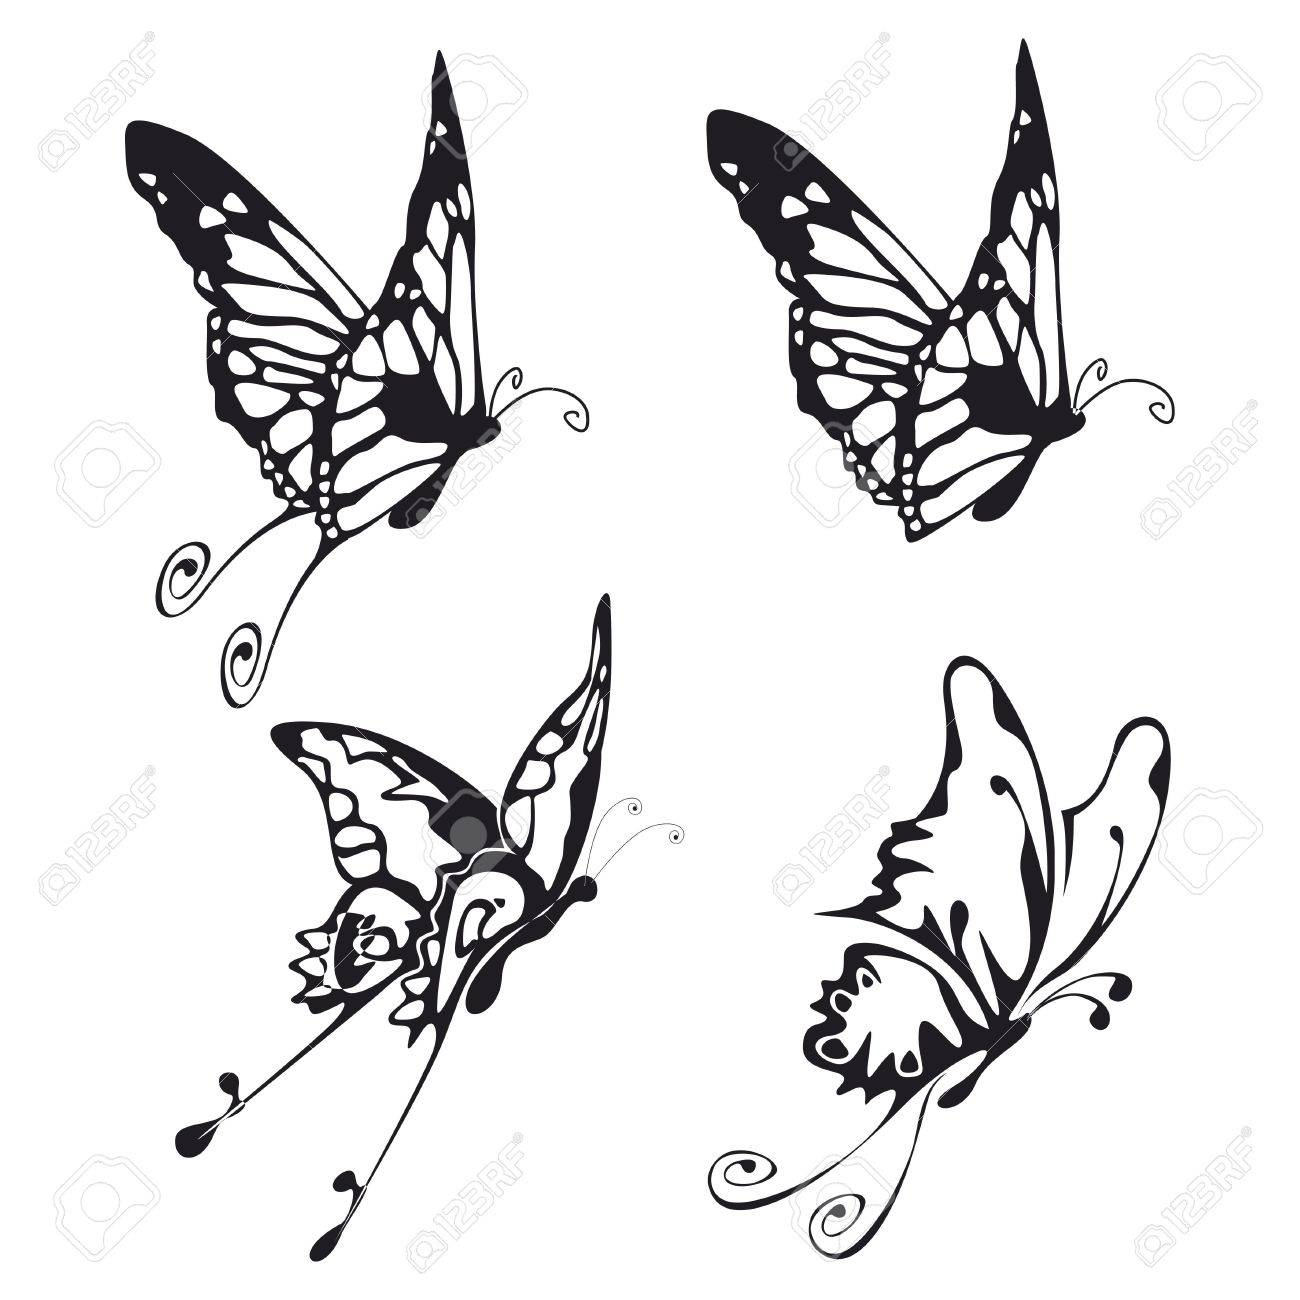 four illustration of fliyng buttefly black on white Stock Photo - 3635888